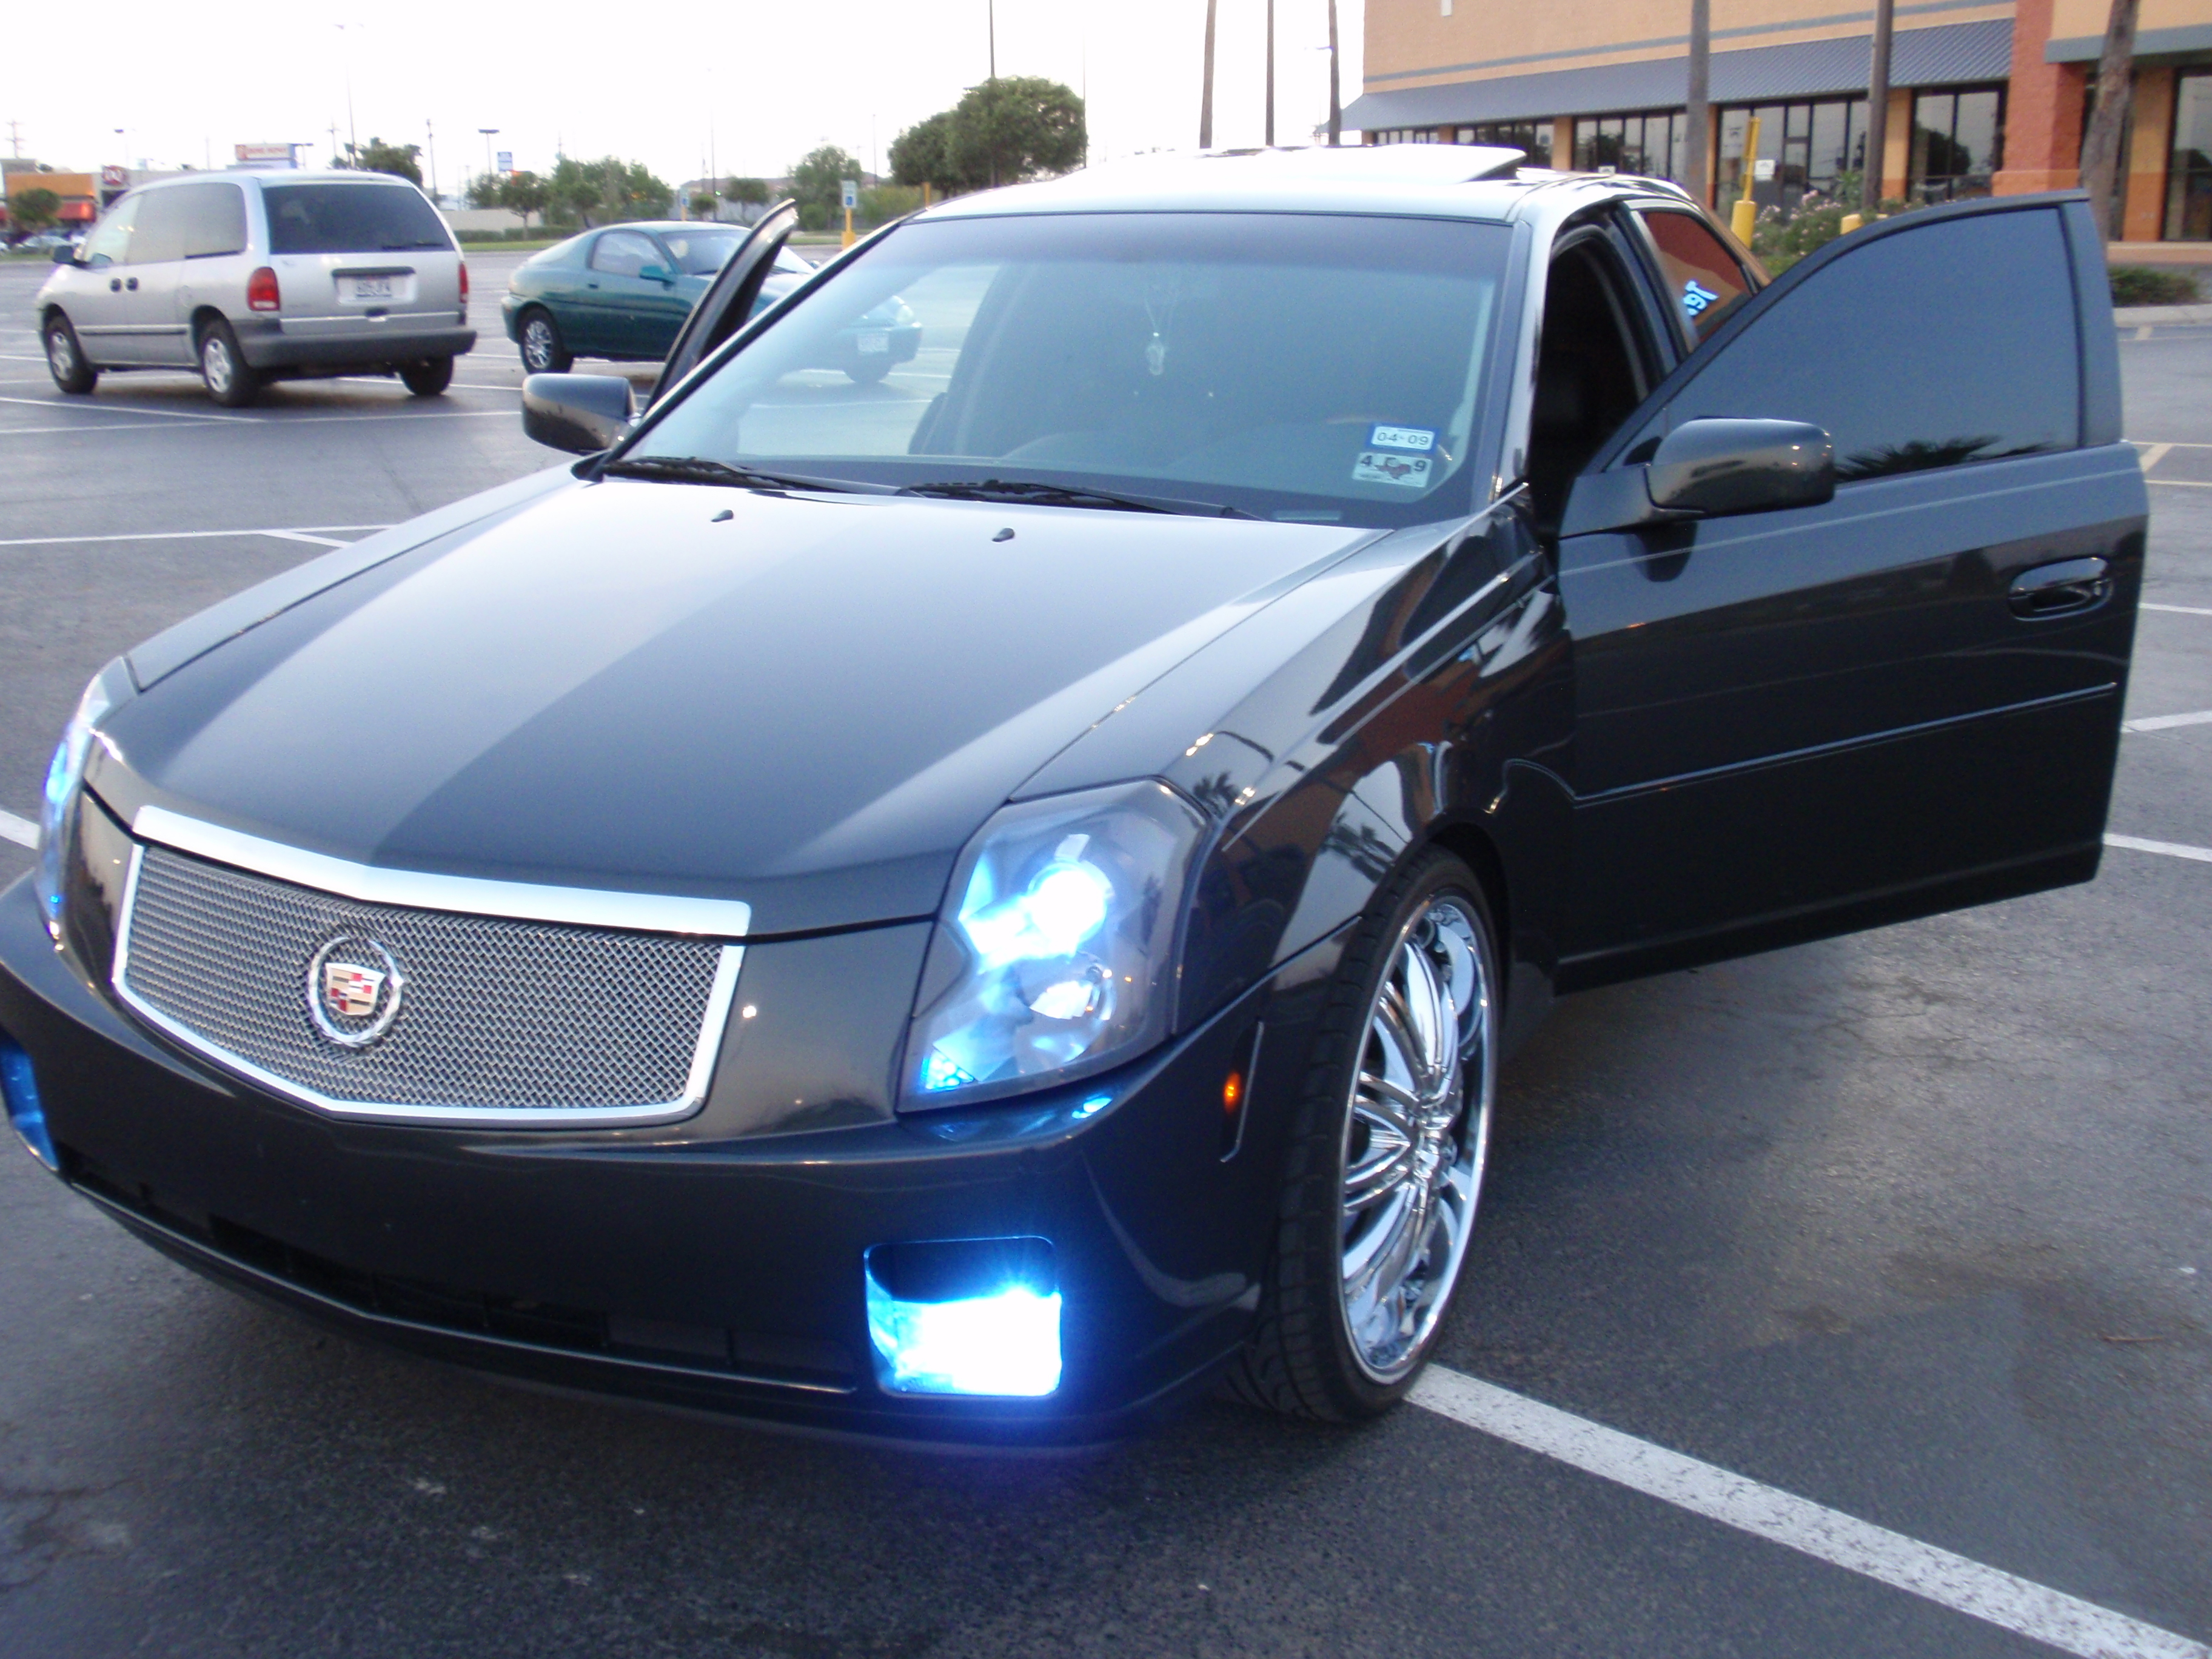 saleenyellow101 2005 cadillac cts 39 s photo gallery at cardomain. Black Bedroom Furniture Sets. Home Design Ideas